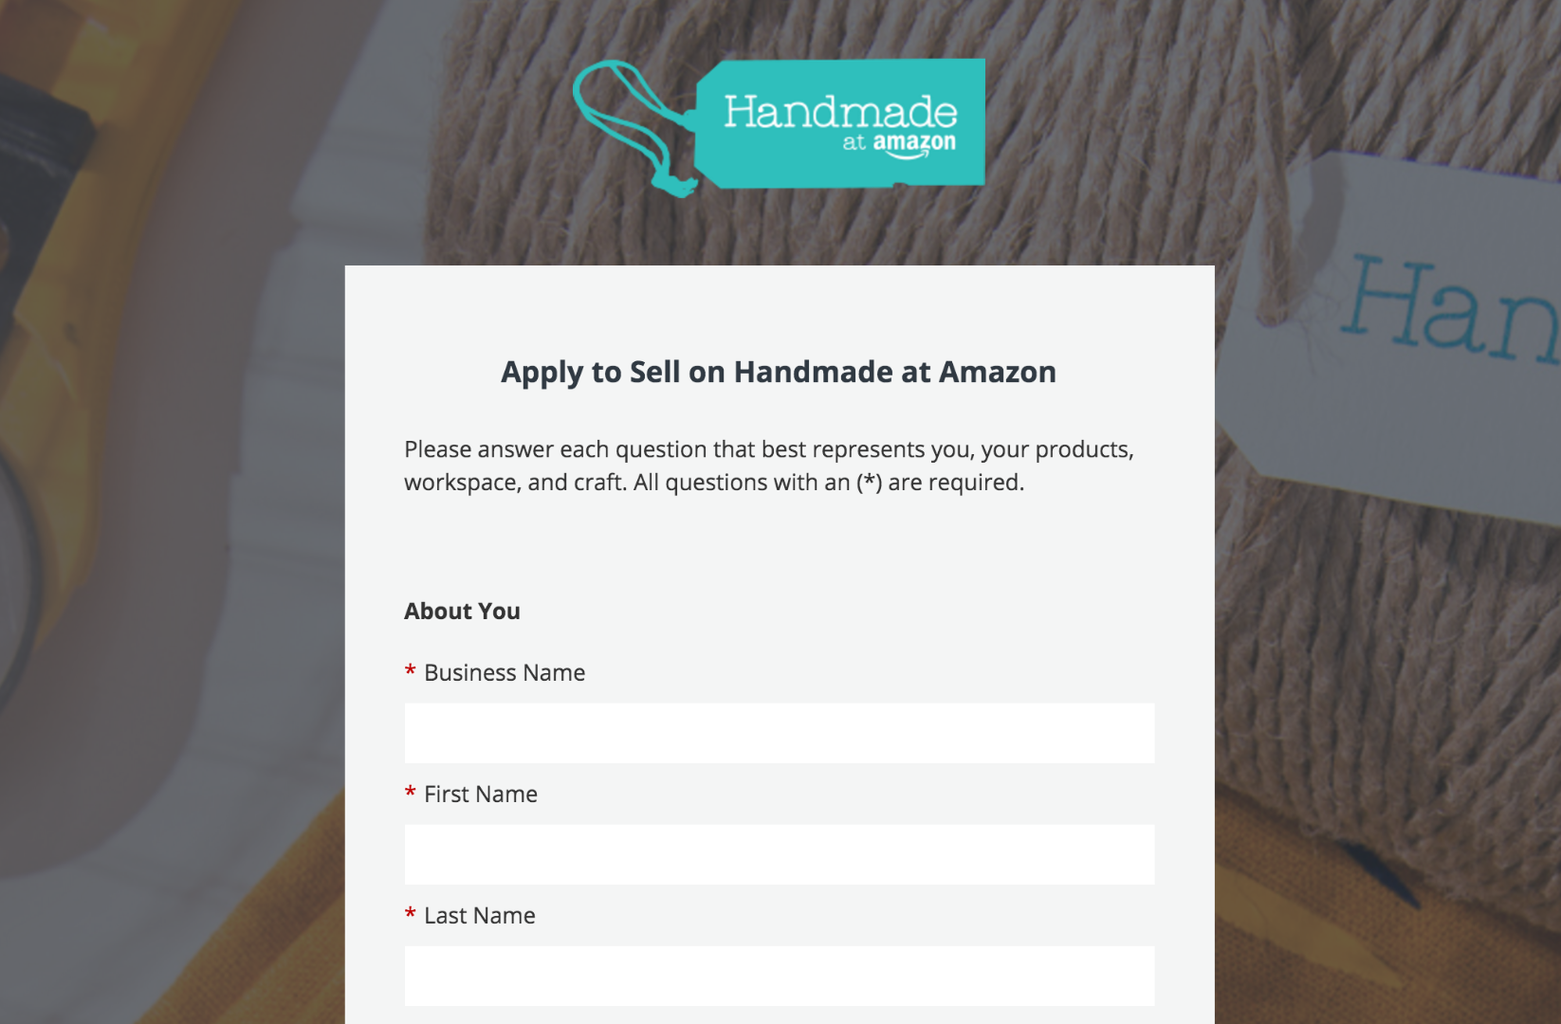 How to Apply for Handmade at Amazon